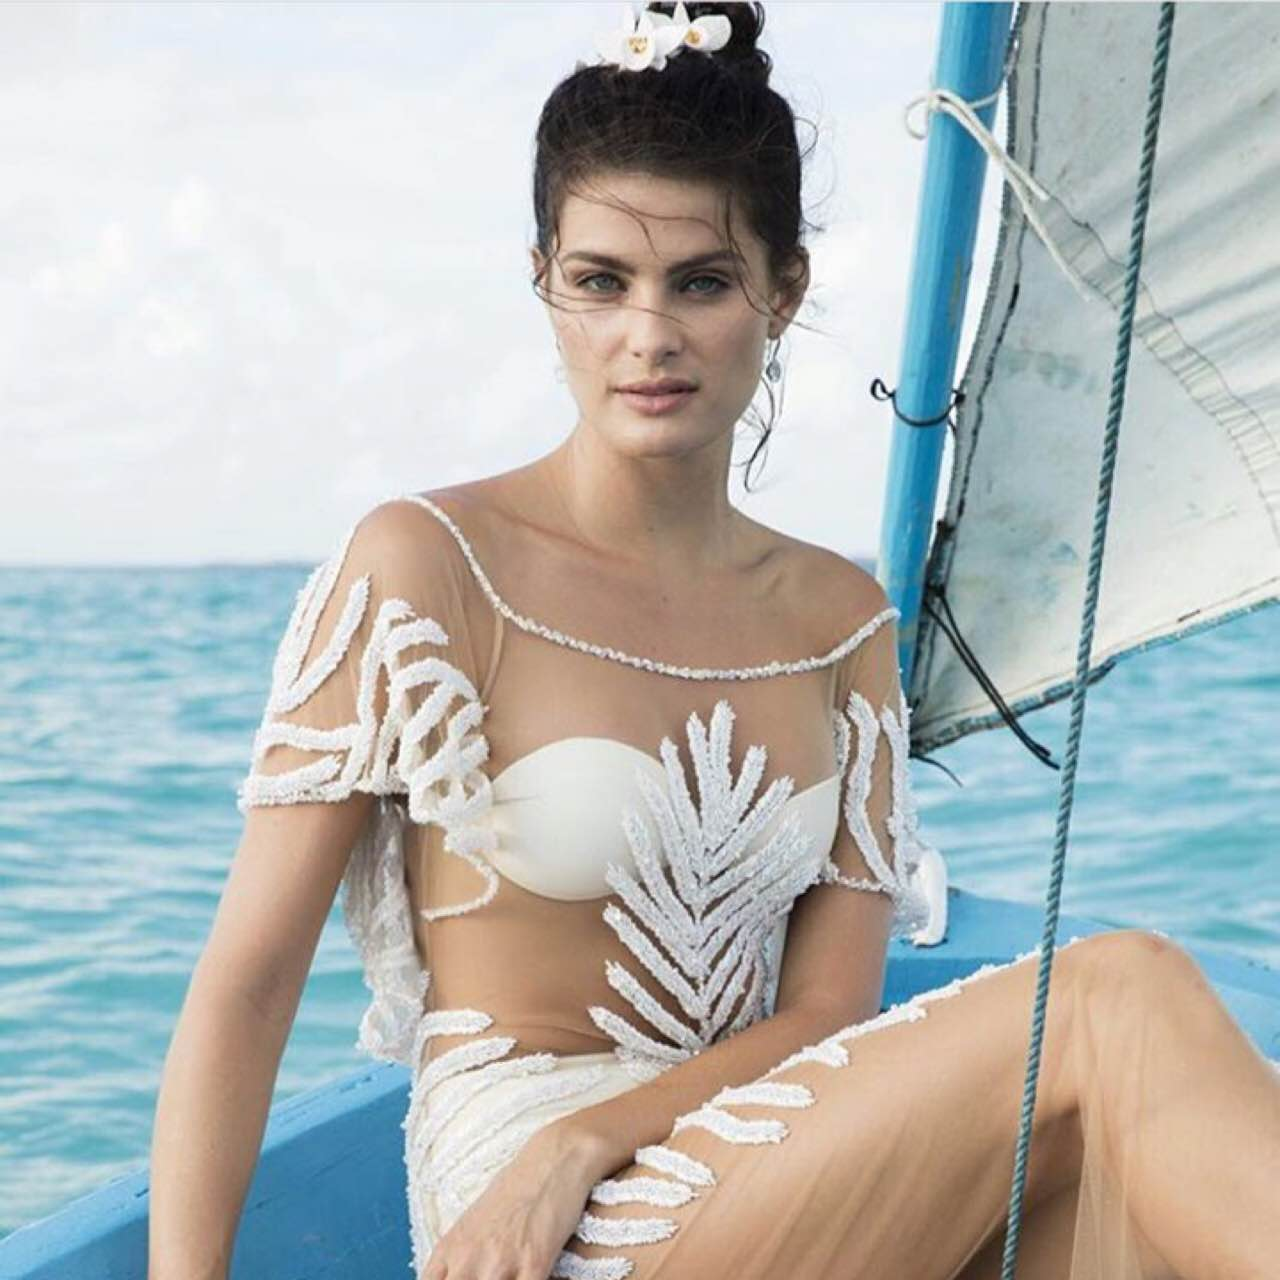 isabeli-fontana-wedding-dress